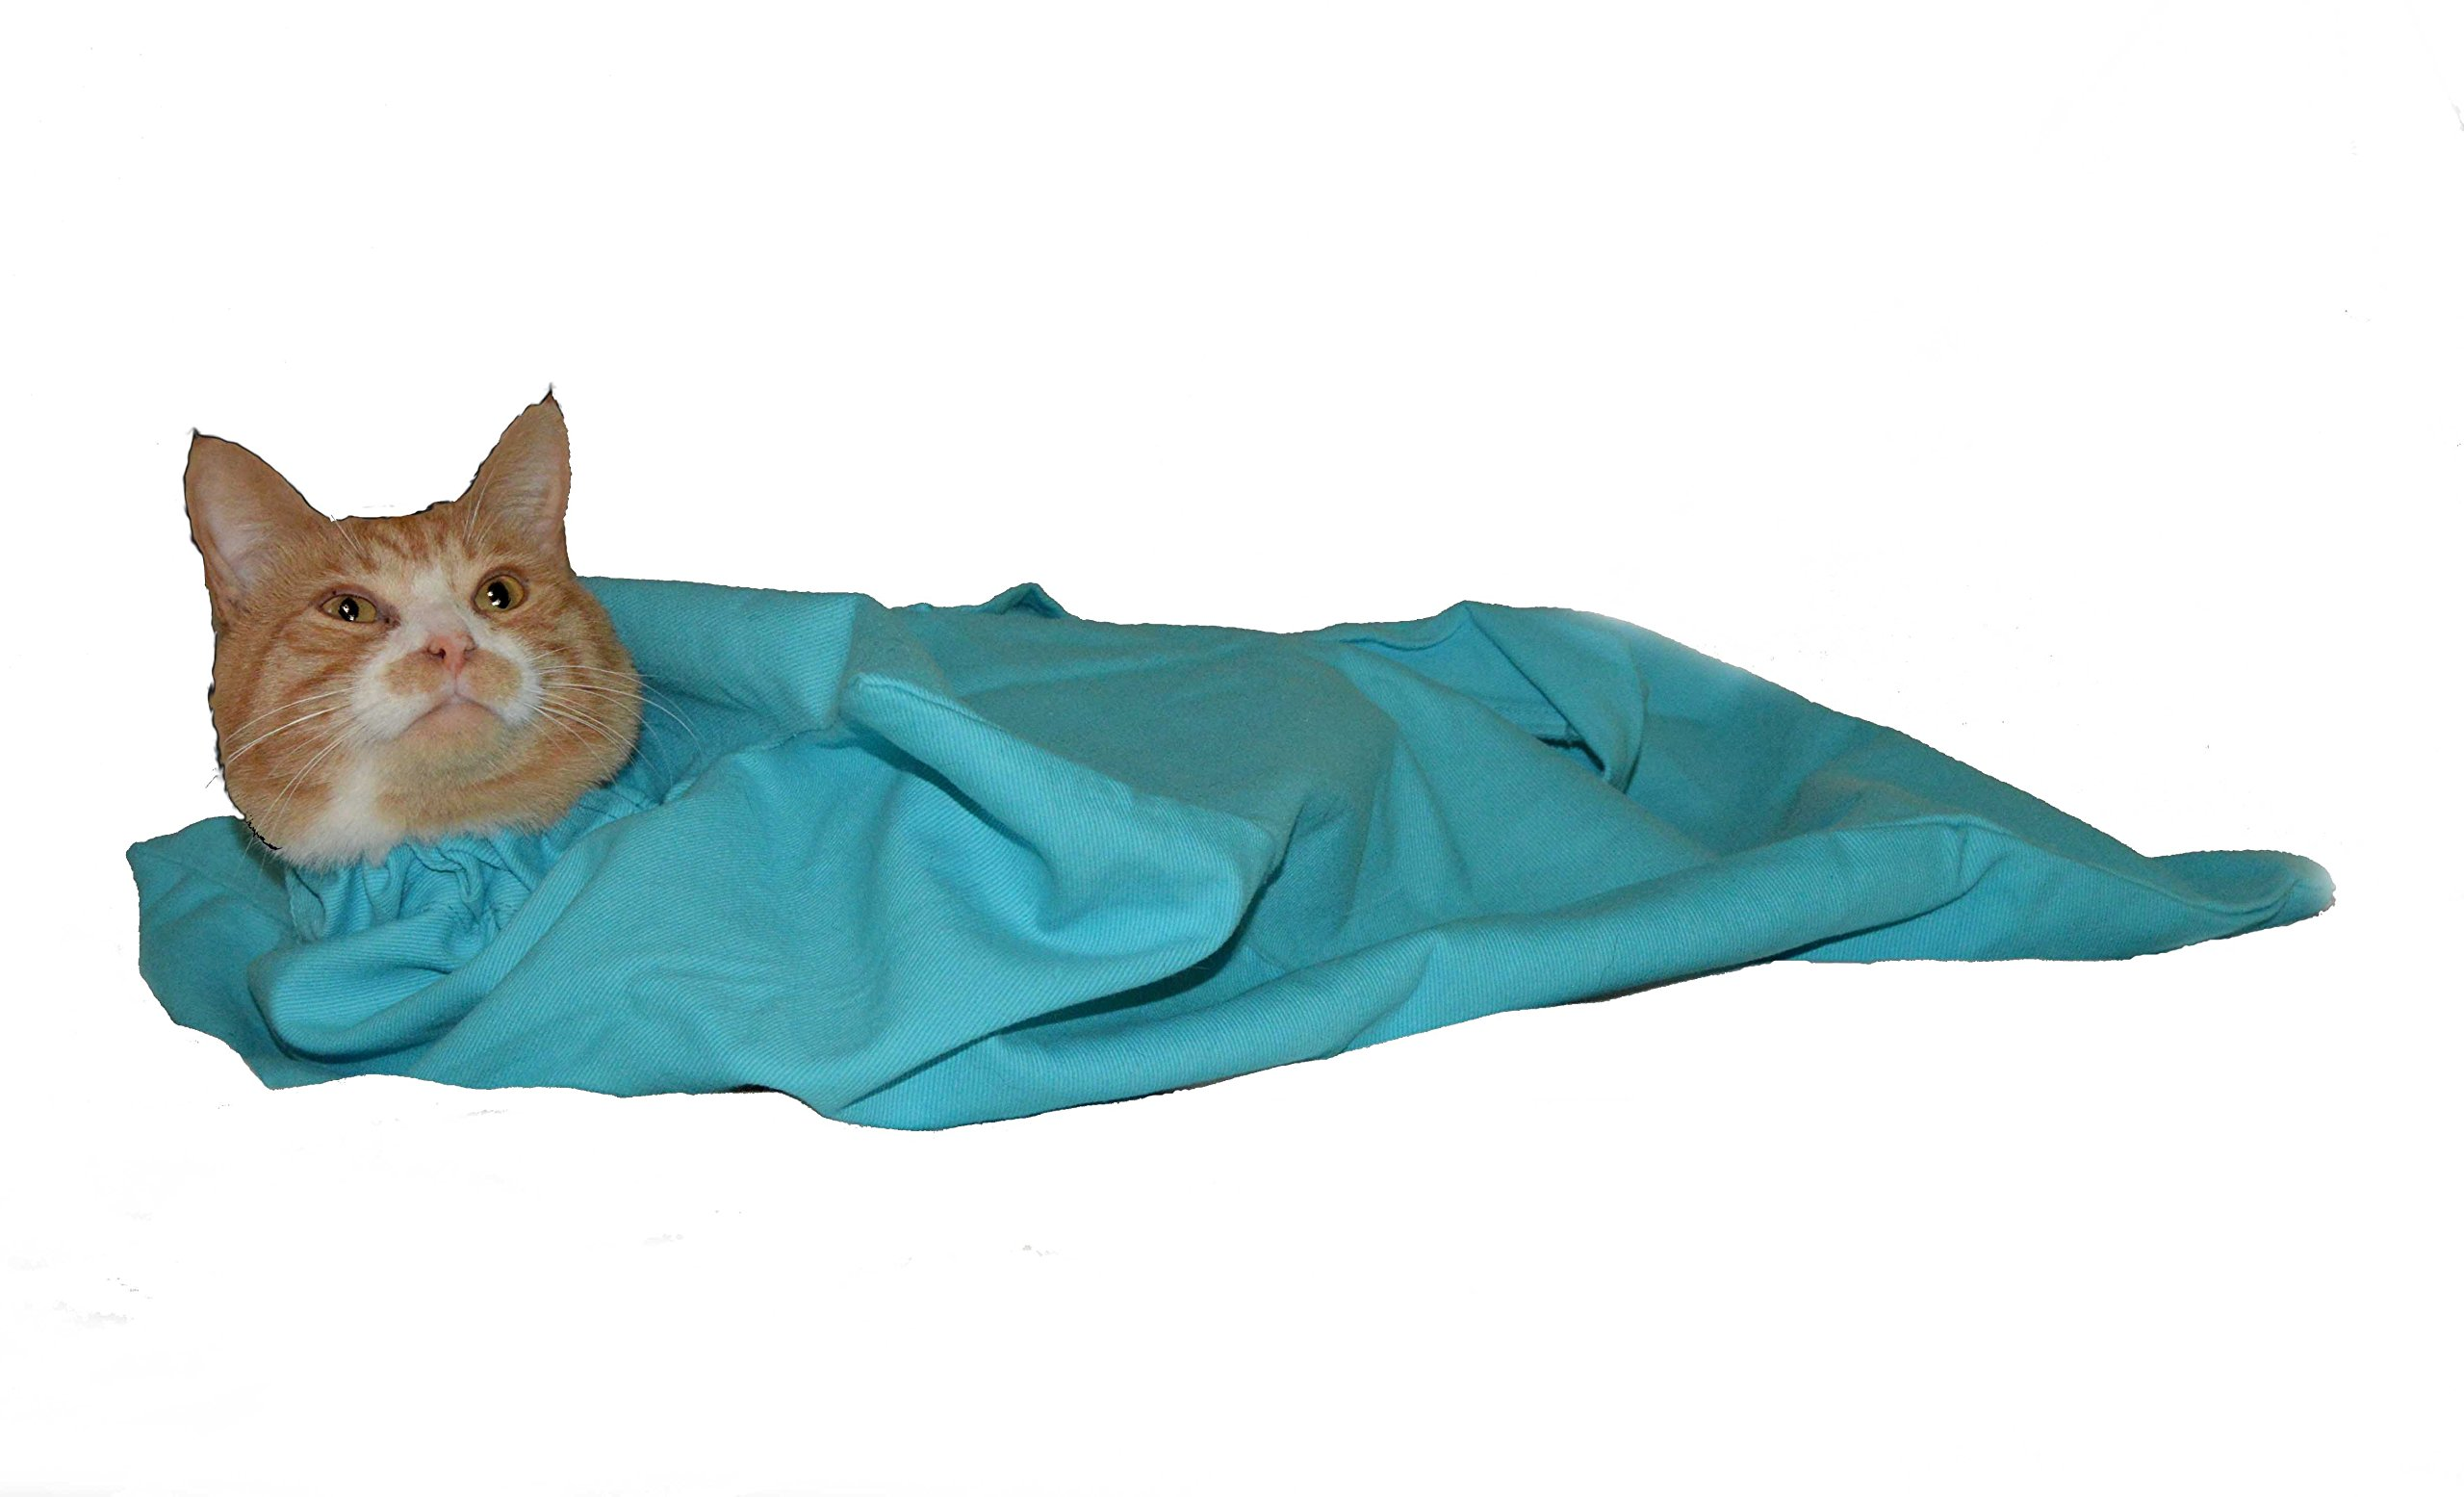 Cat-in-the-bag Small Light Blue Cozy Comfort Carrier - Cat Carrier and Grooming Bag for Vet Visits, Medication Administration, Dental Care, Bathing, Nail Trimming and Car Travel by Cat-in-the-bag